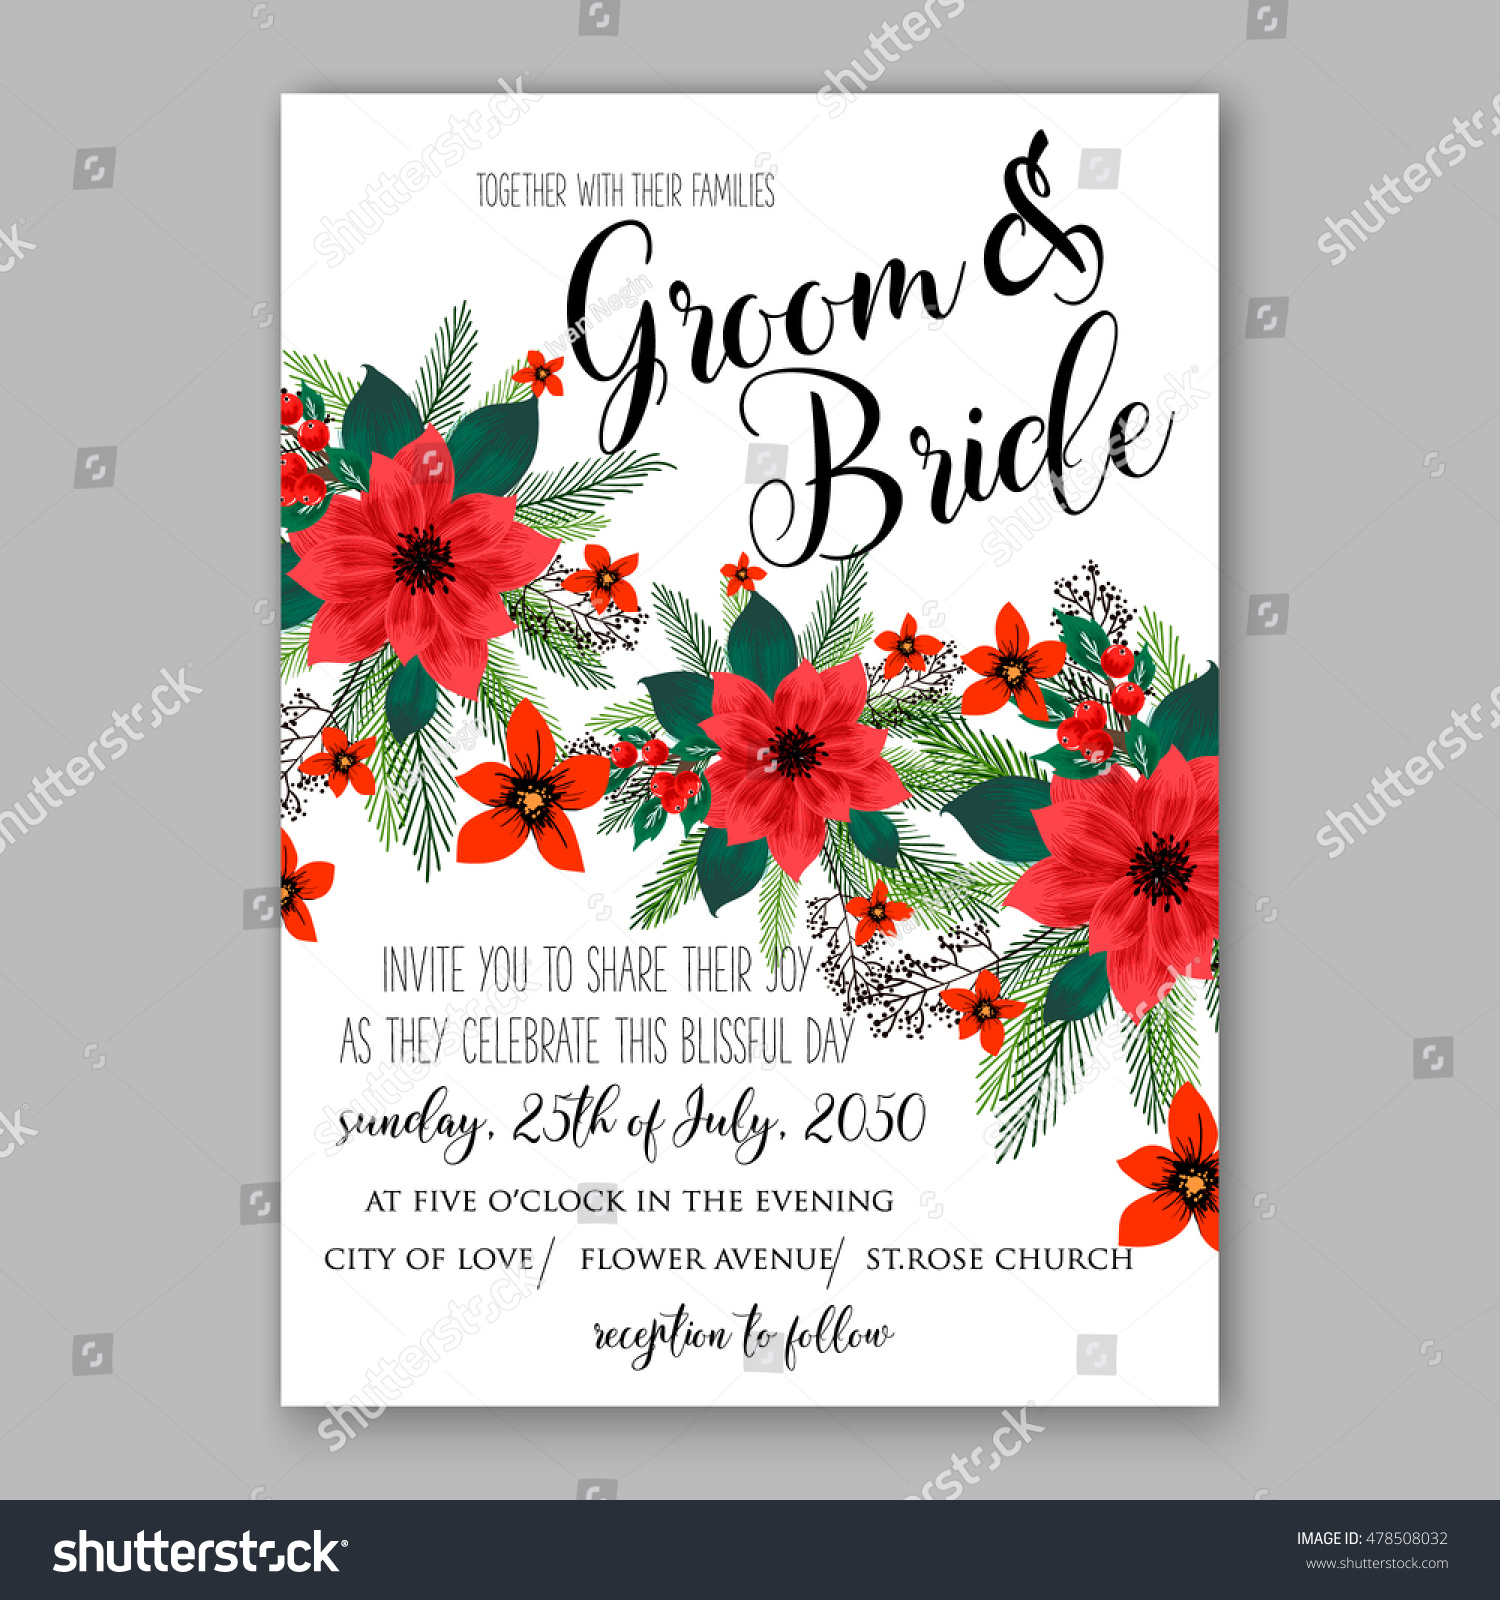 Christmas wedding invitation wording